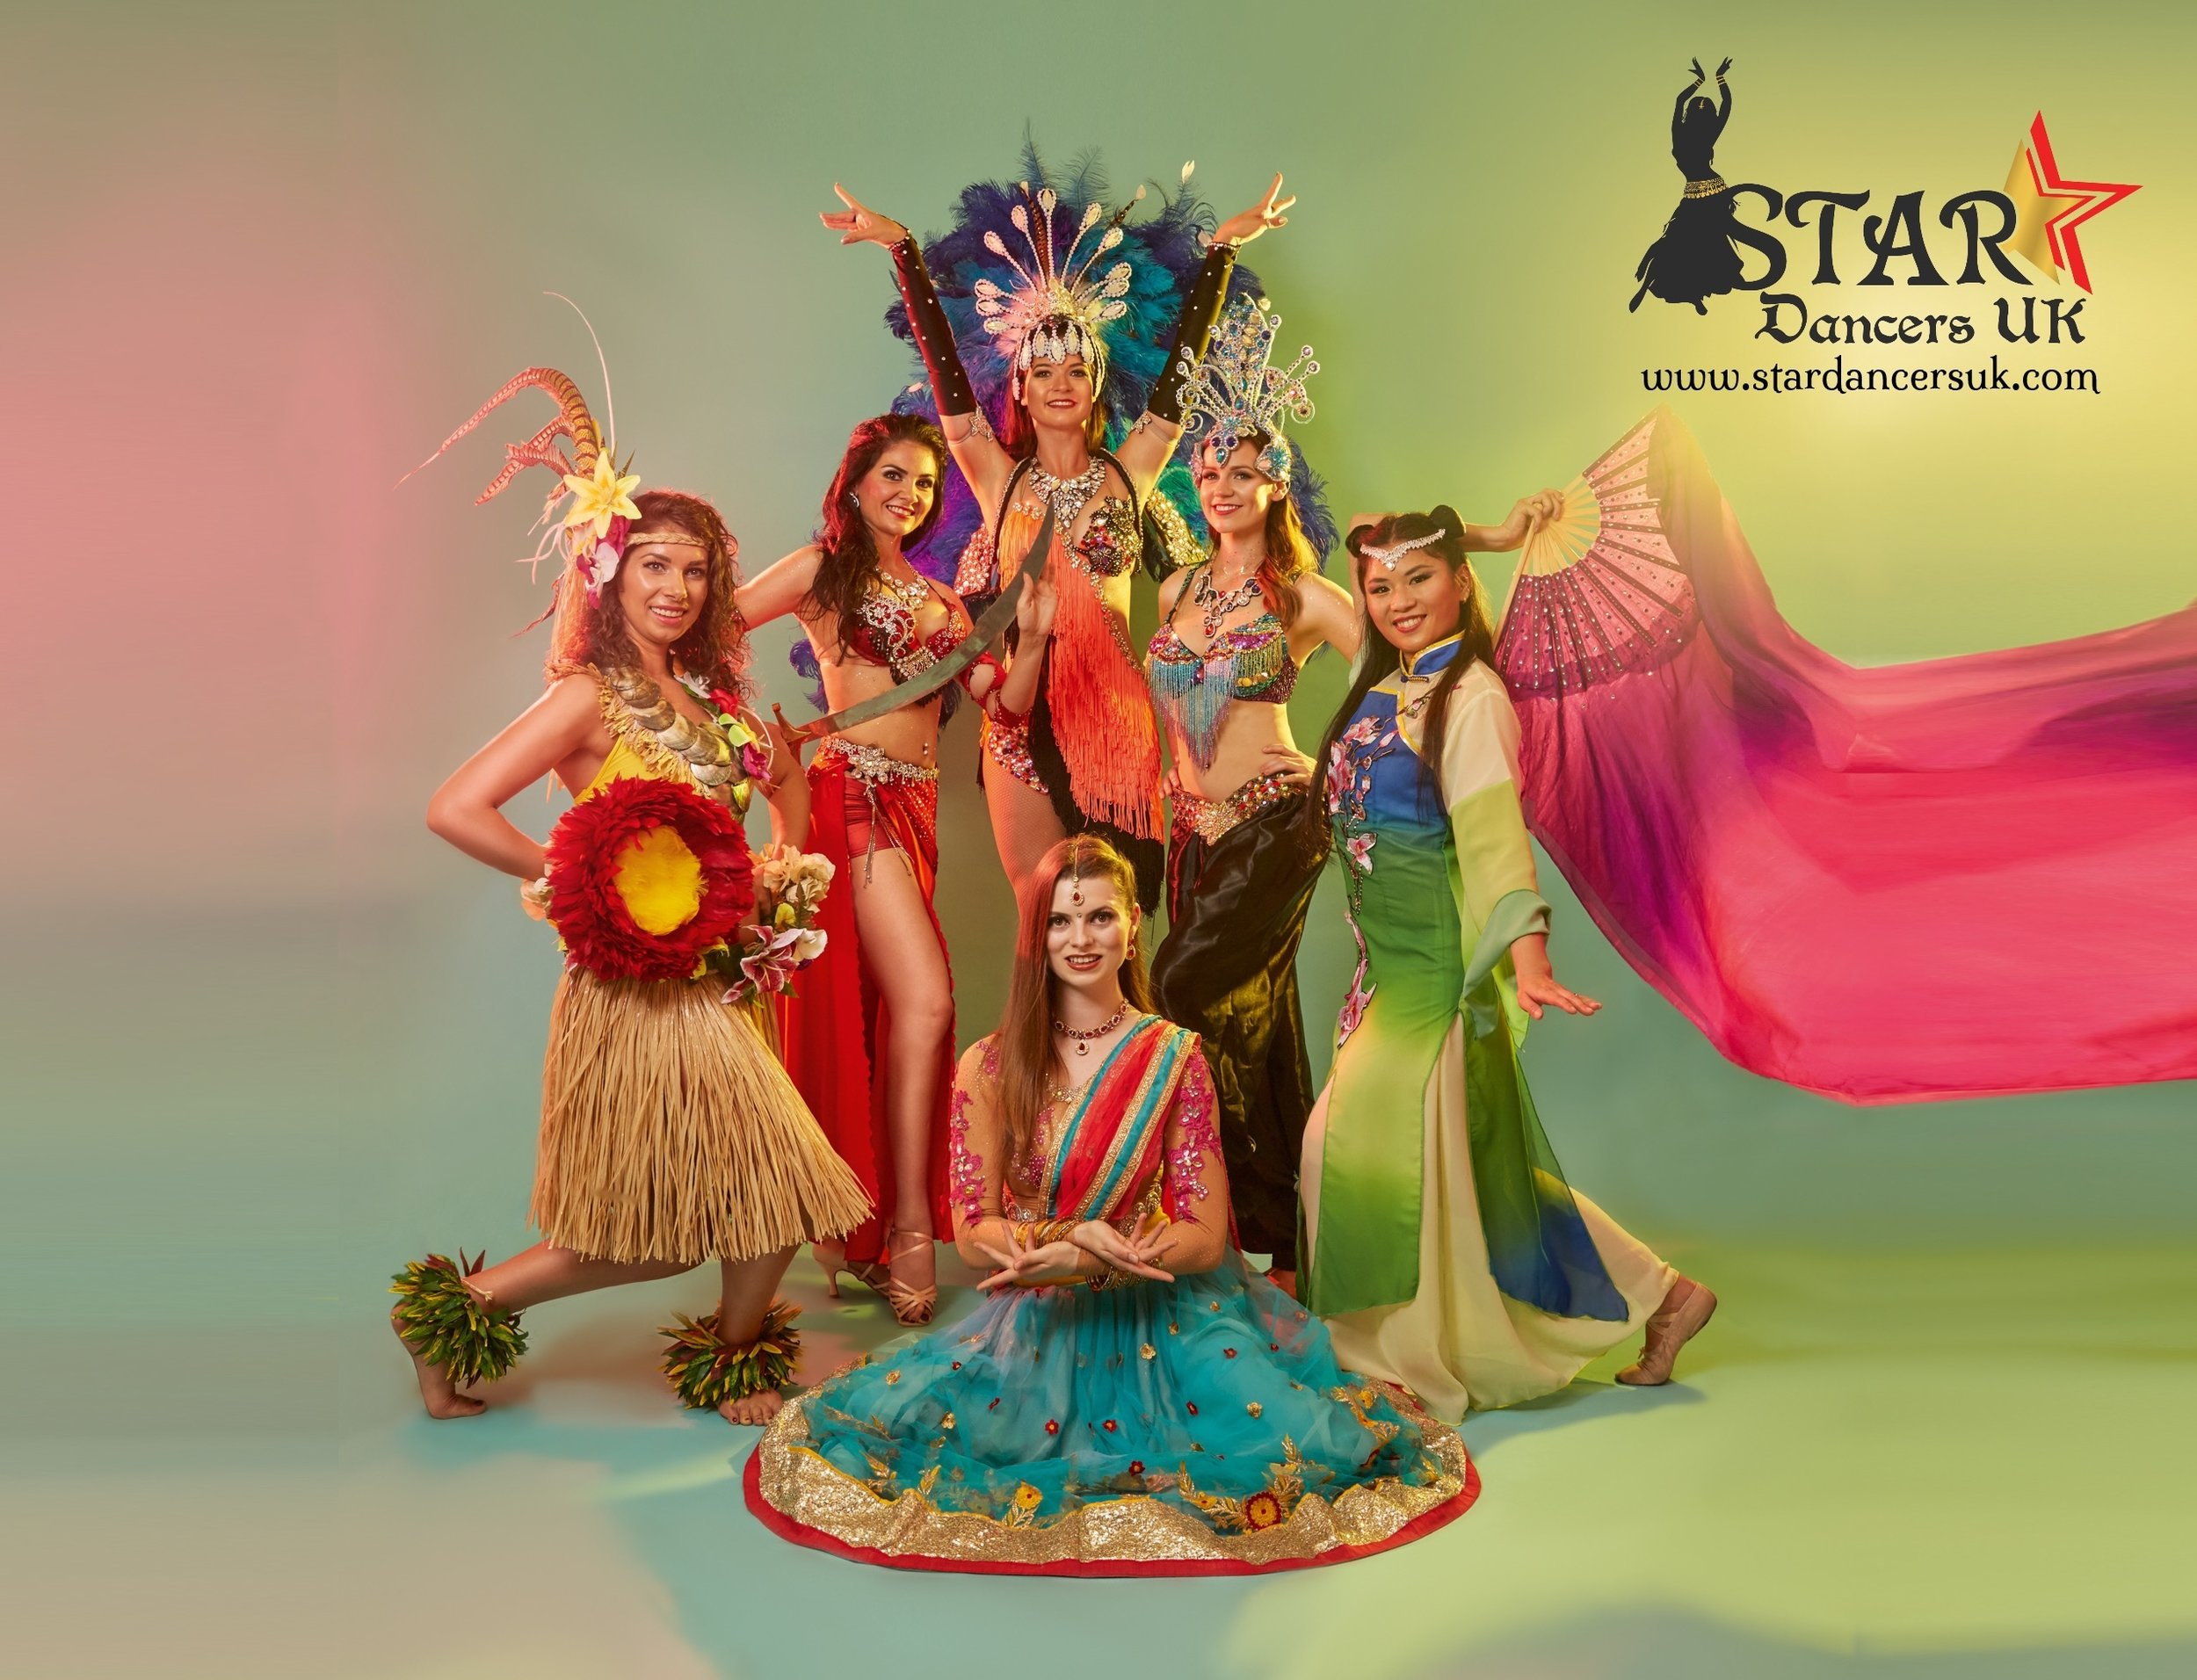 Due to the  unique talent and experience  within the Star Dancers UK team, we are able to create fusion performances for just about any combination of dance styles. So if your event involves a mixture of cultures, or you would just like to see something different, get in touch with us to see what our dance experts can do for you.